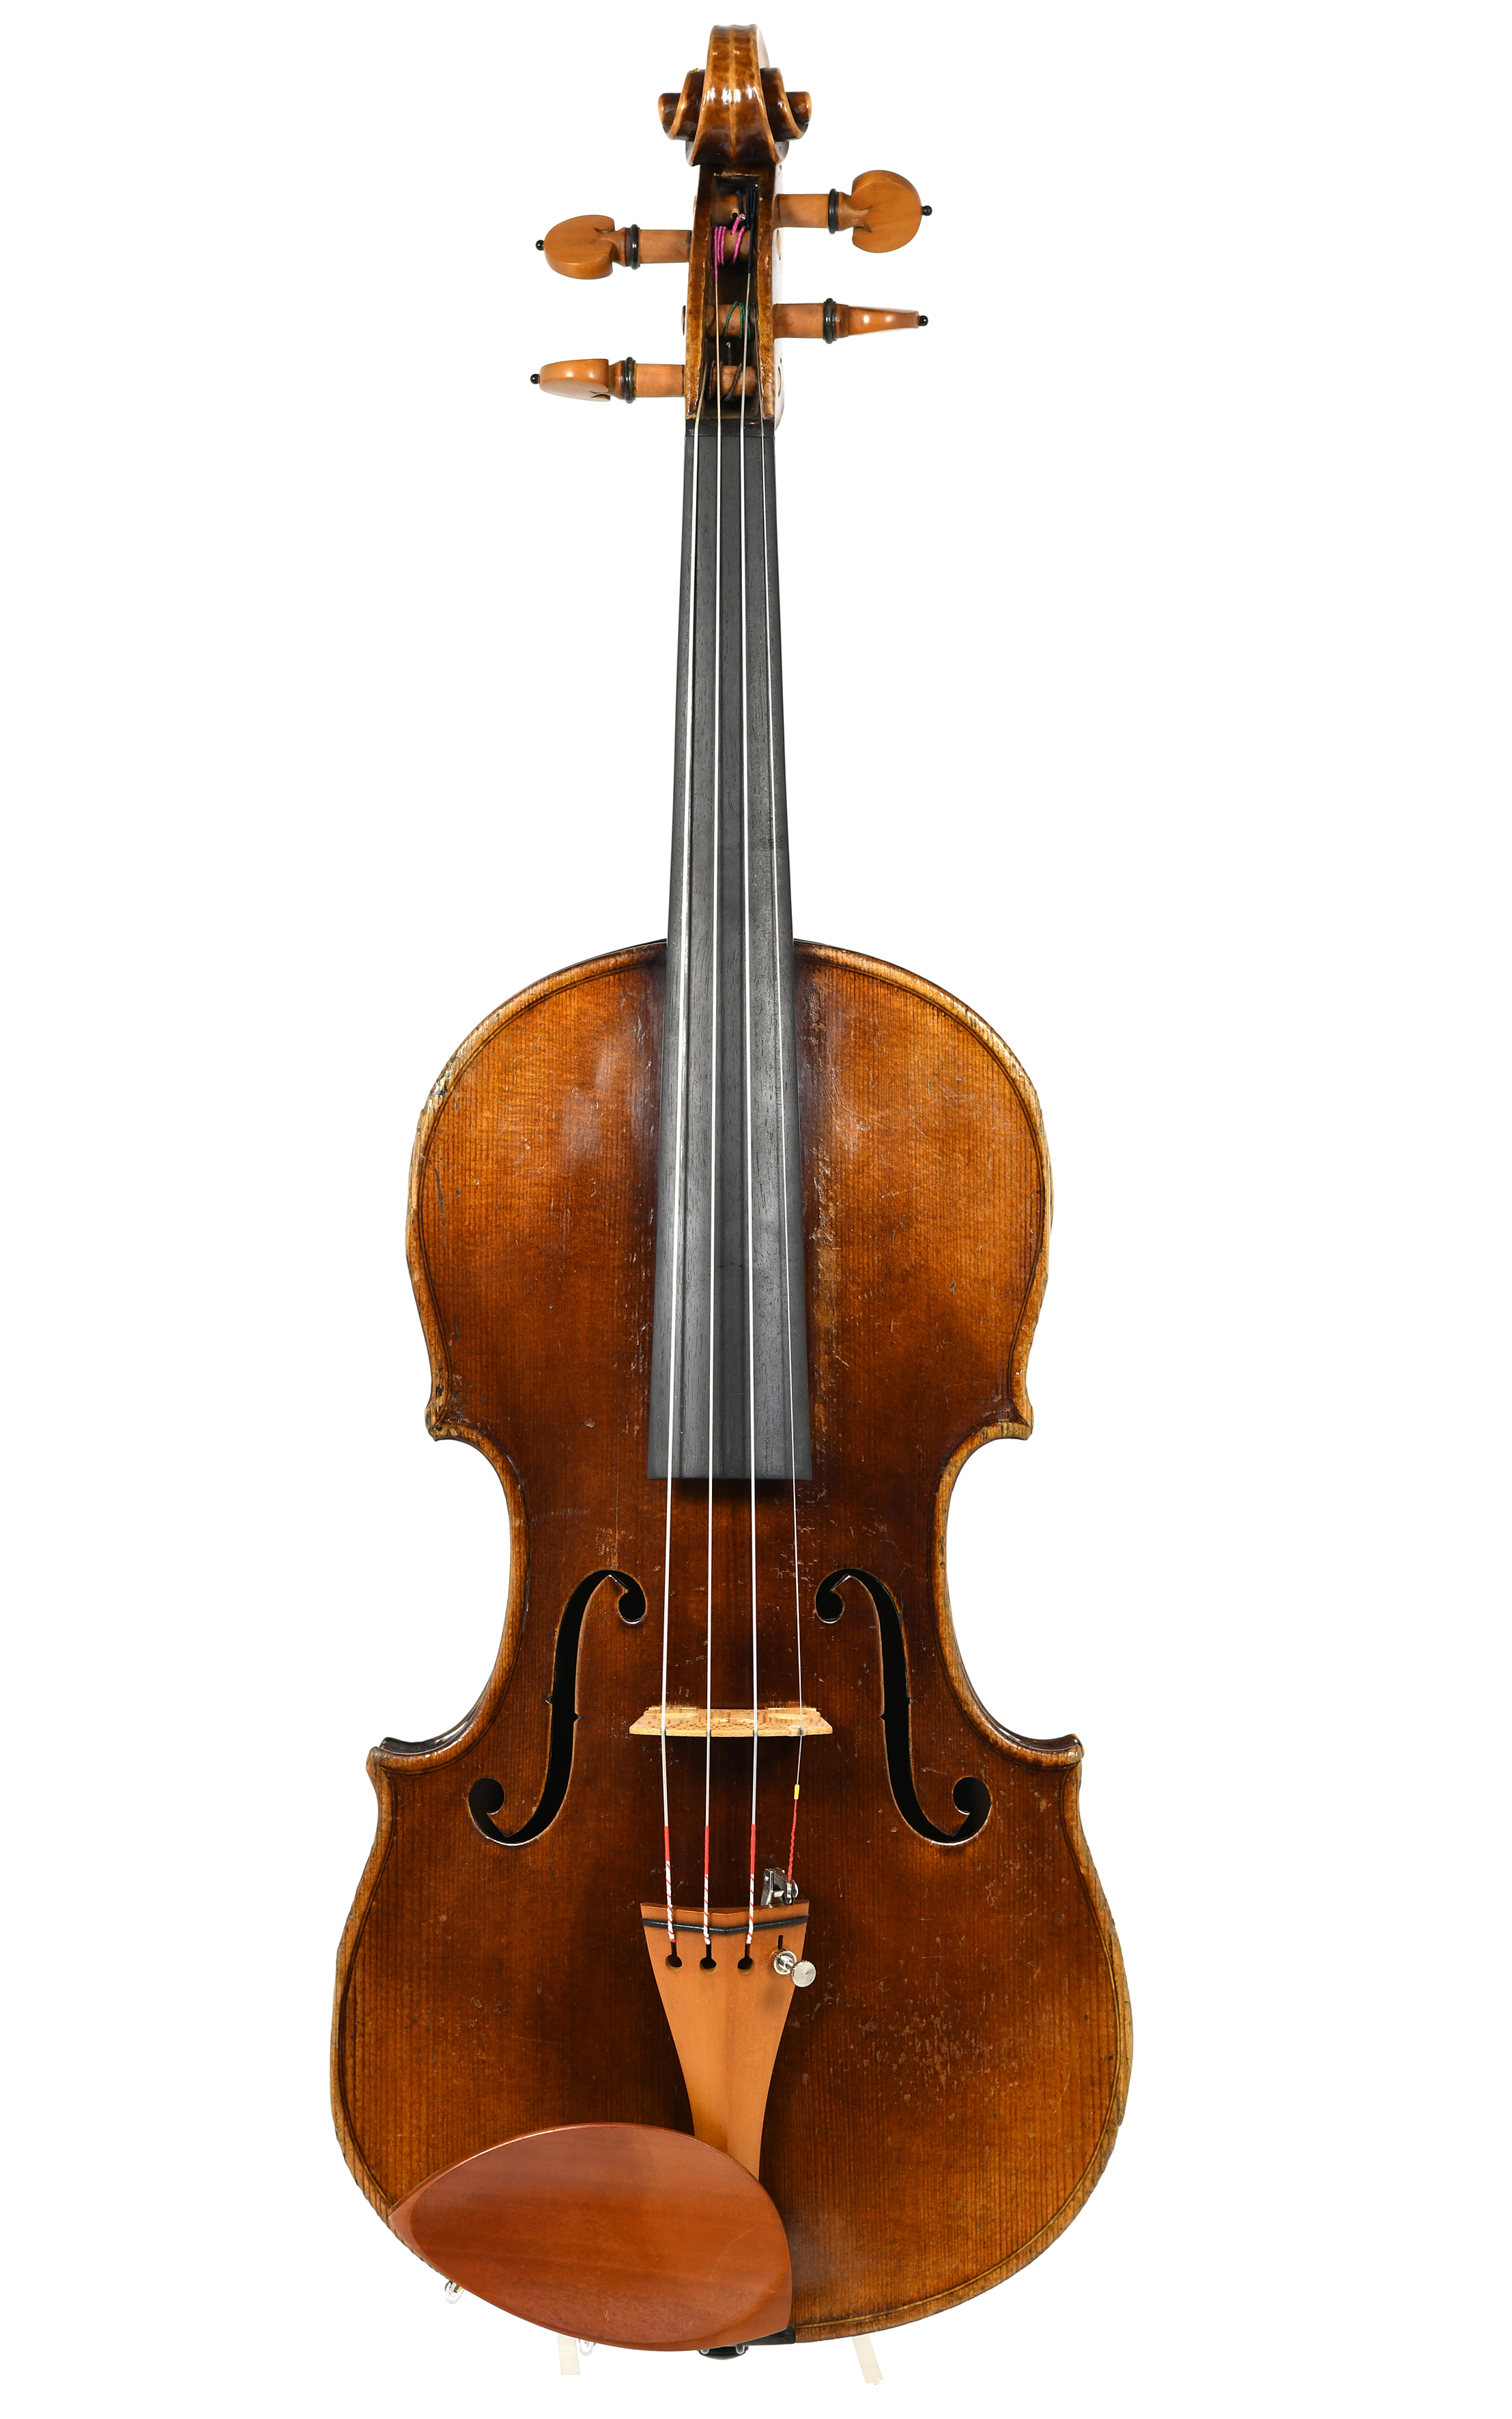 Klingenthal violin by Friedrich August Meisel senior